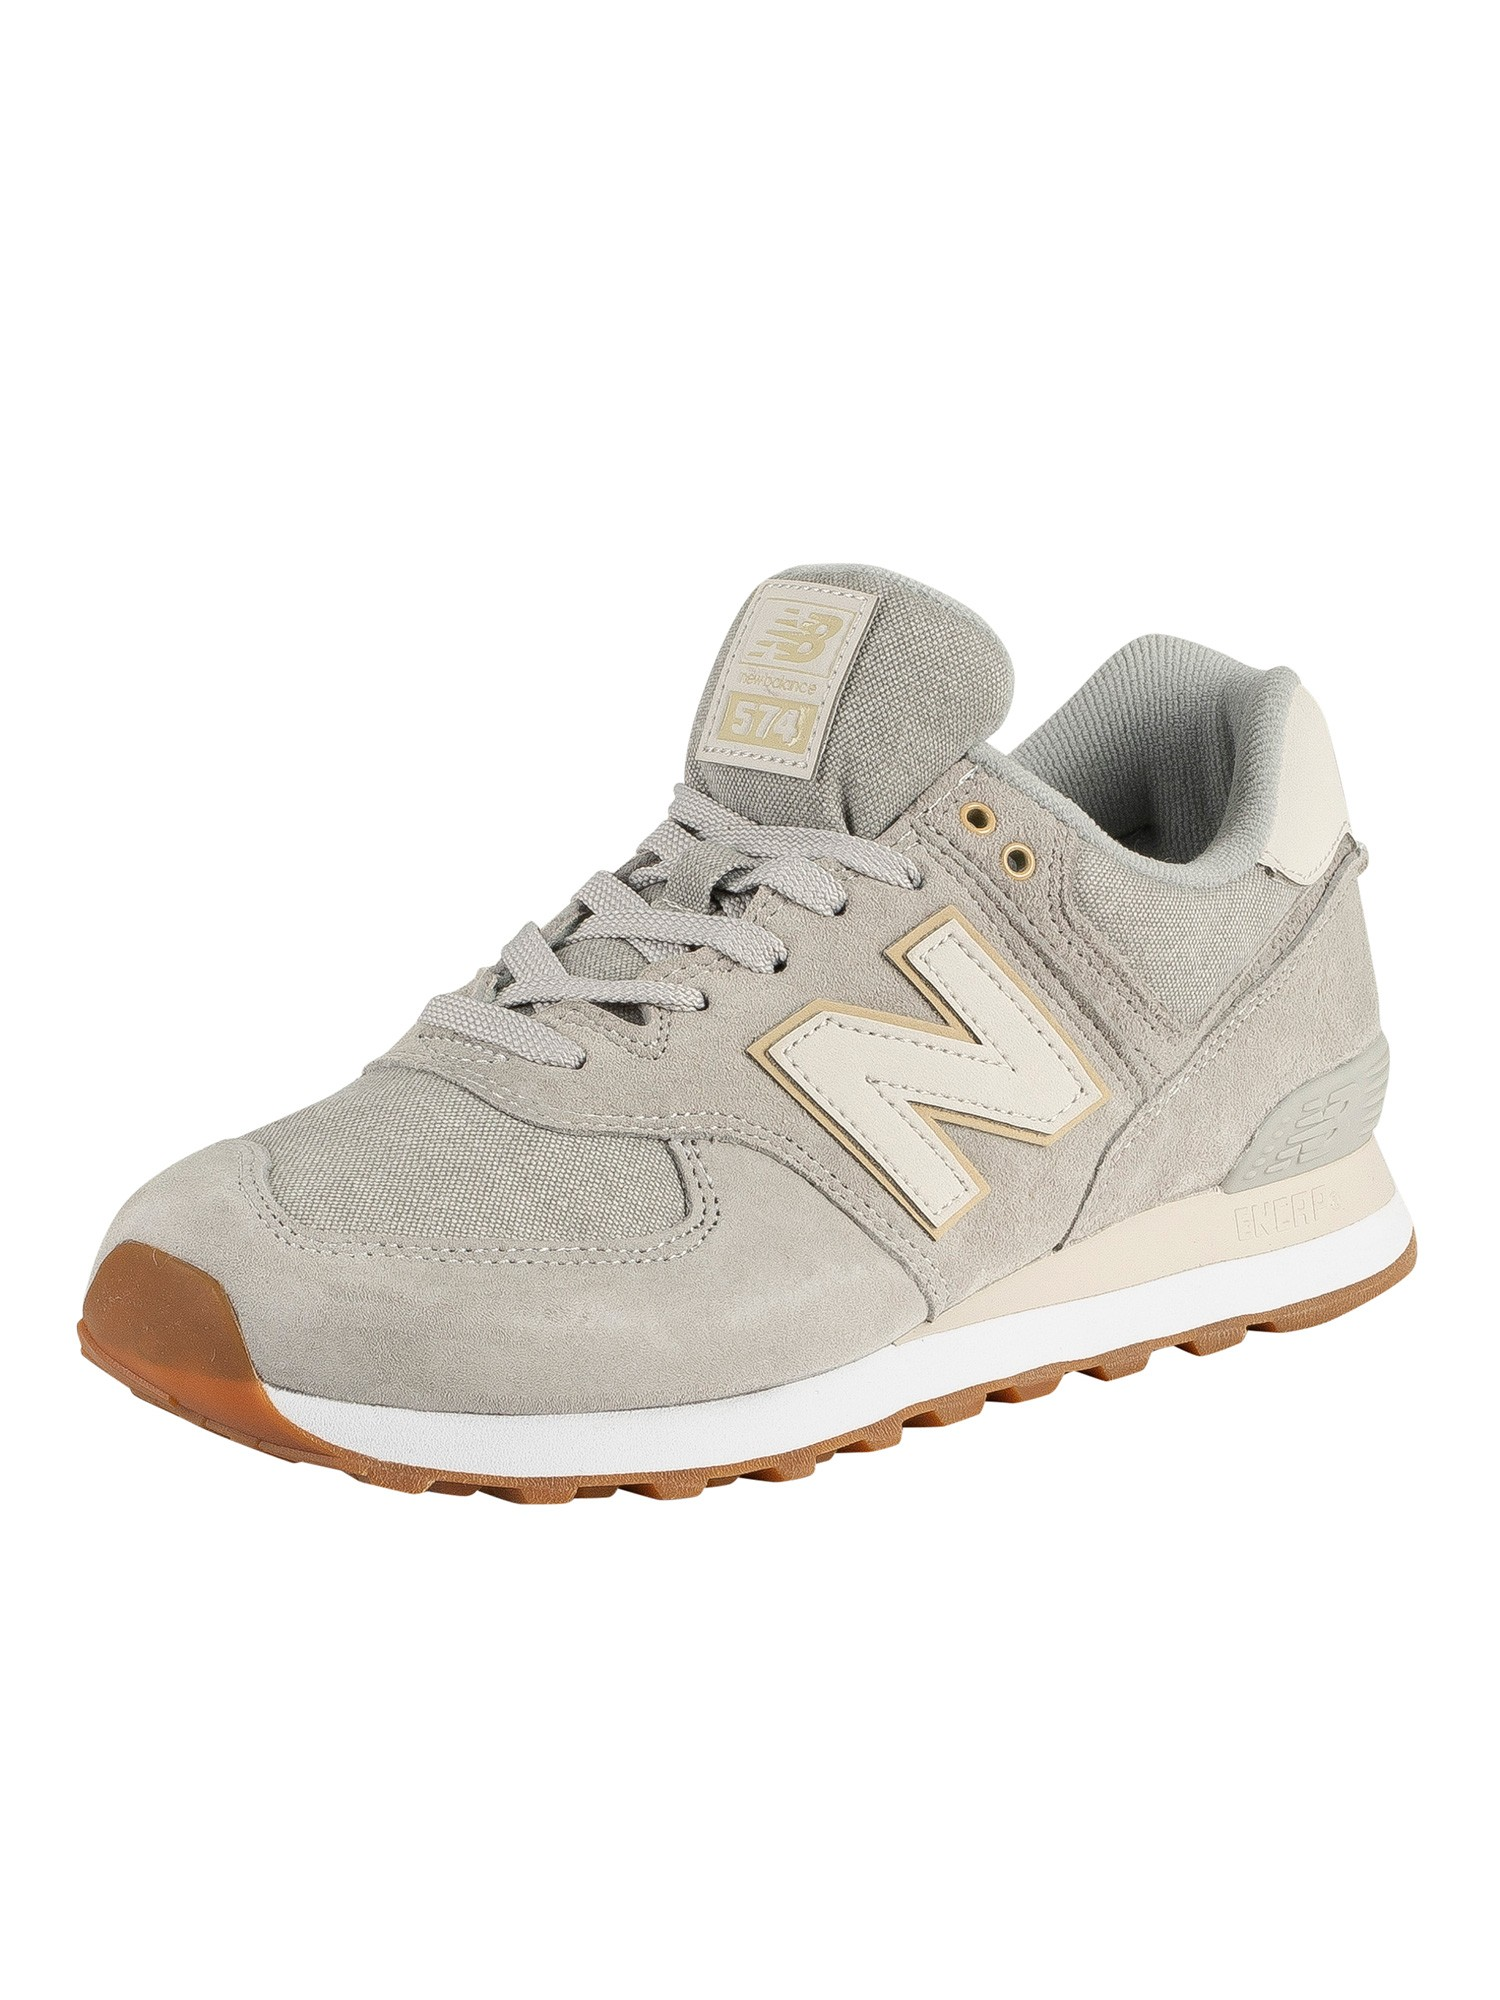 lowest price 6a329 a0cda New Balance 574 Suede Trainers - Light Grey